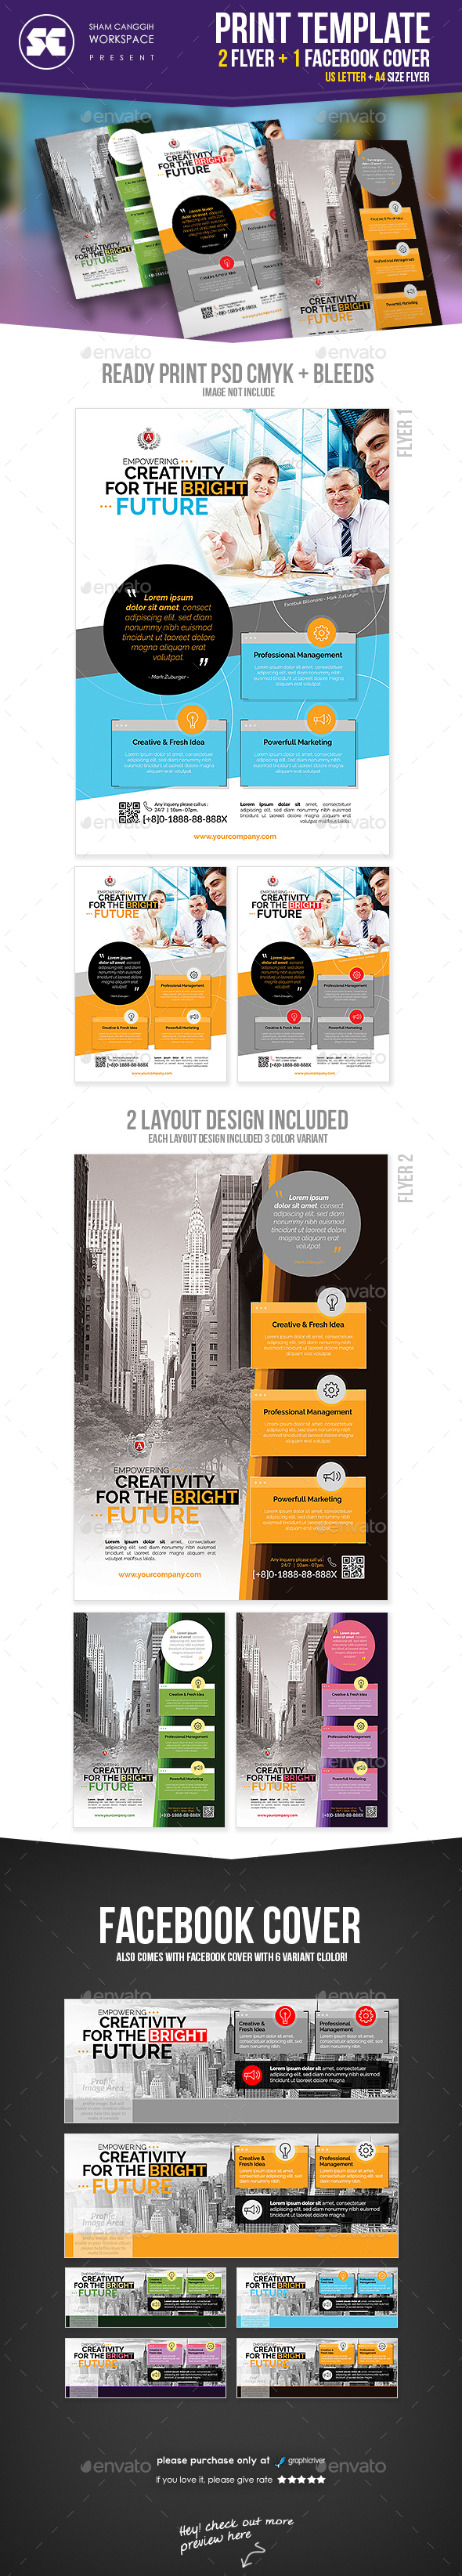 Corporate Flyer + Facebook Cover - Corporate Flyers